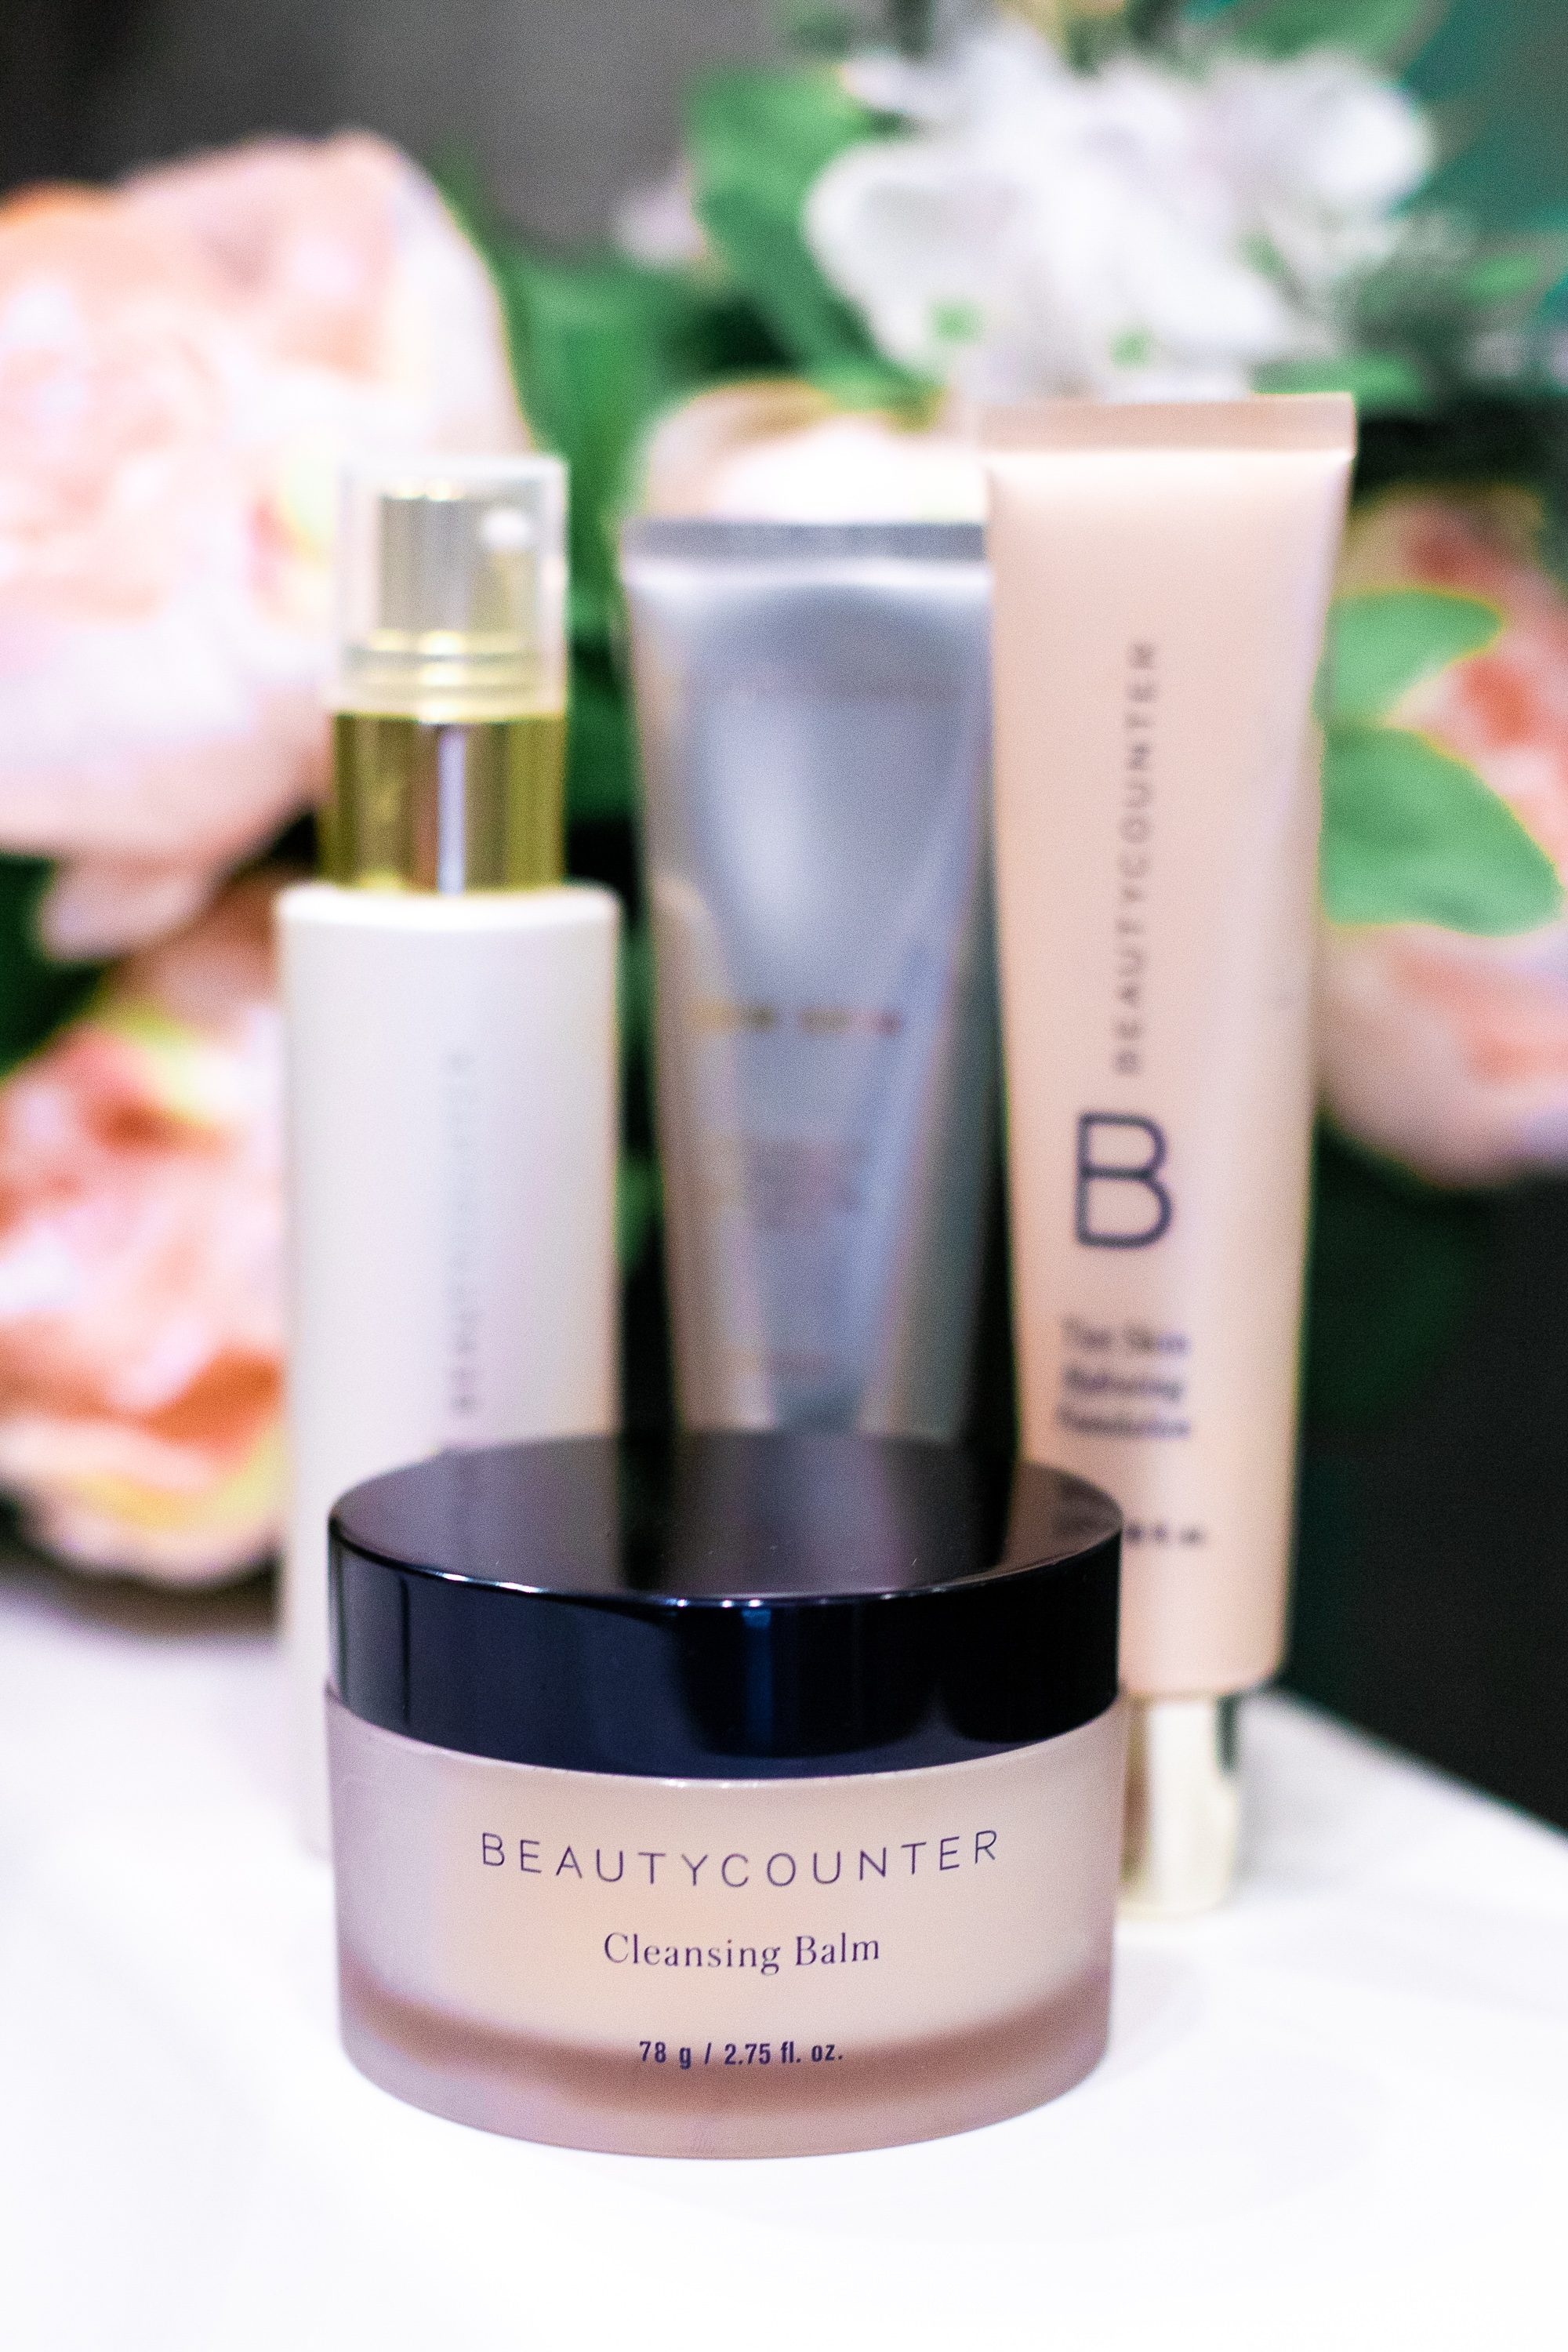 my skin journey, beauty counter, better beauty, best clean beauty brands, best clean beauty products, beauty counter cleansing balm, beauty counter skin tint, beautycounter cleansing balm